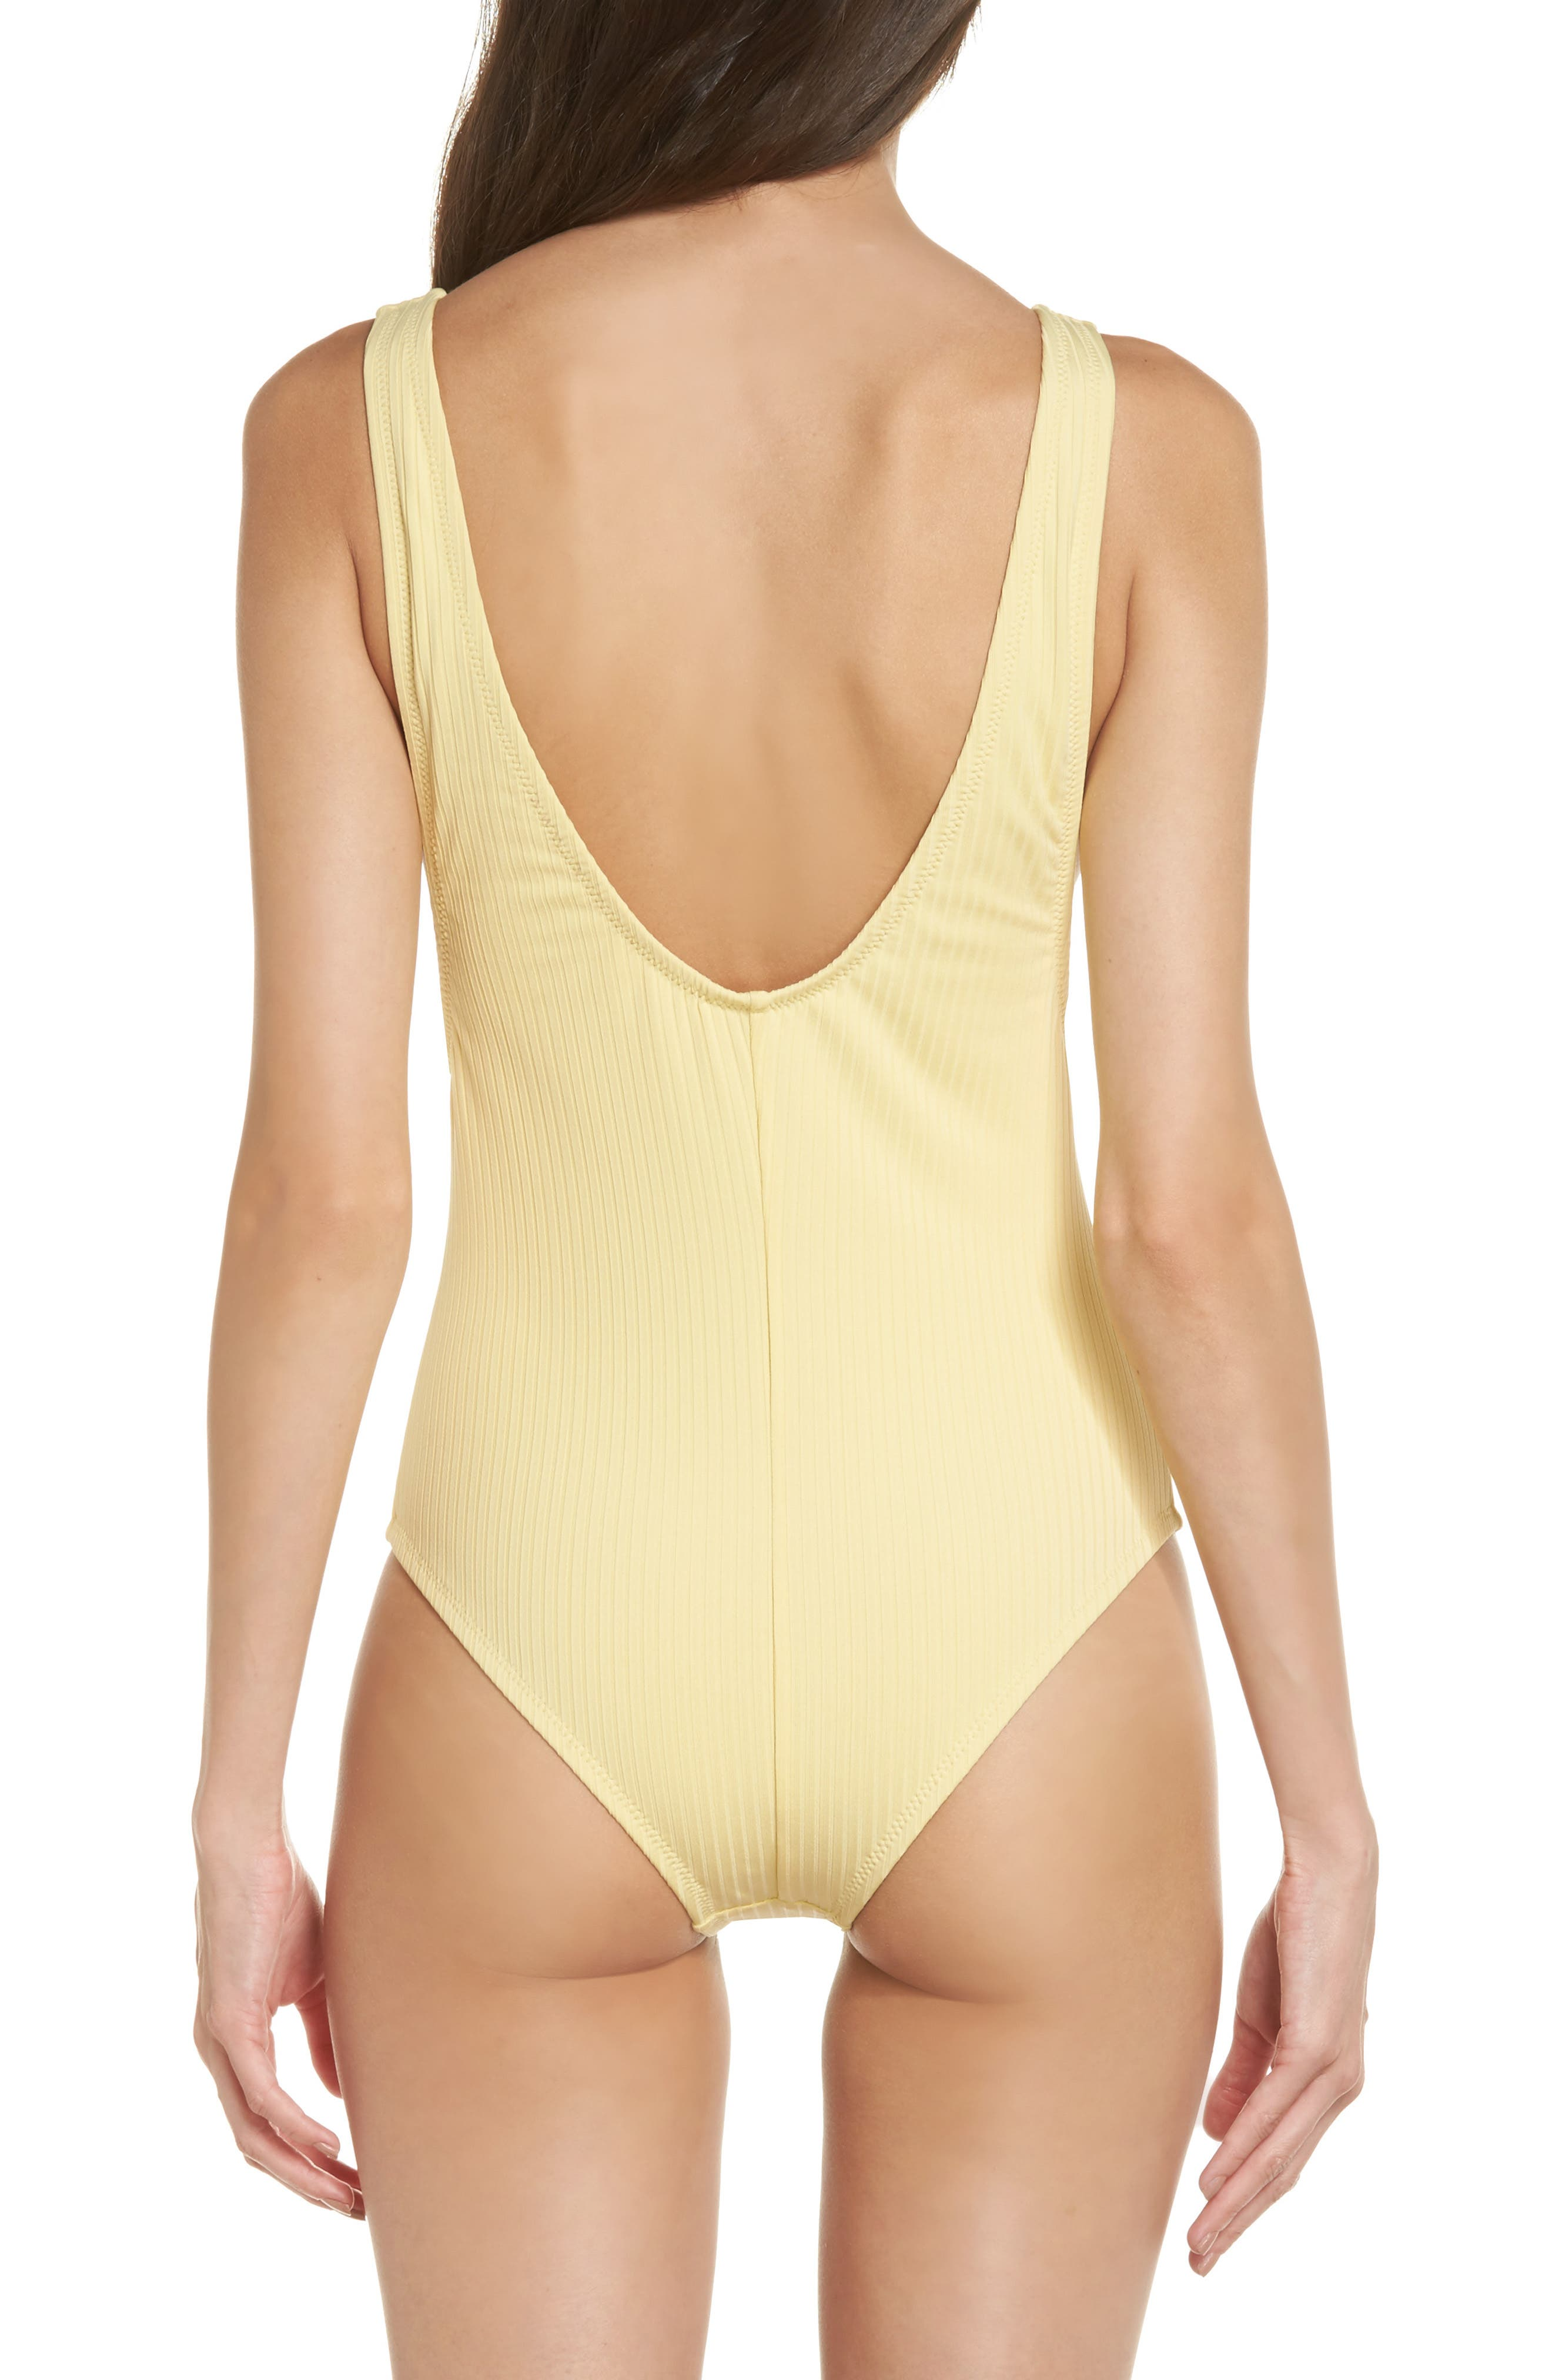 Vermont One-Piece Swimsuit,                             Alternate thumbnail 2, color,                             Soft Yellow